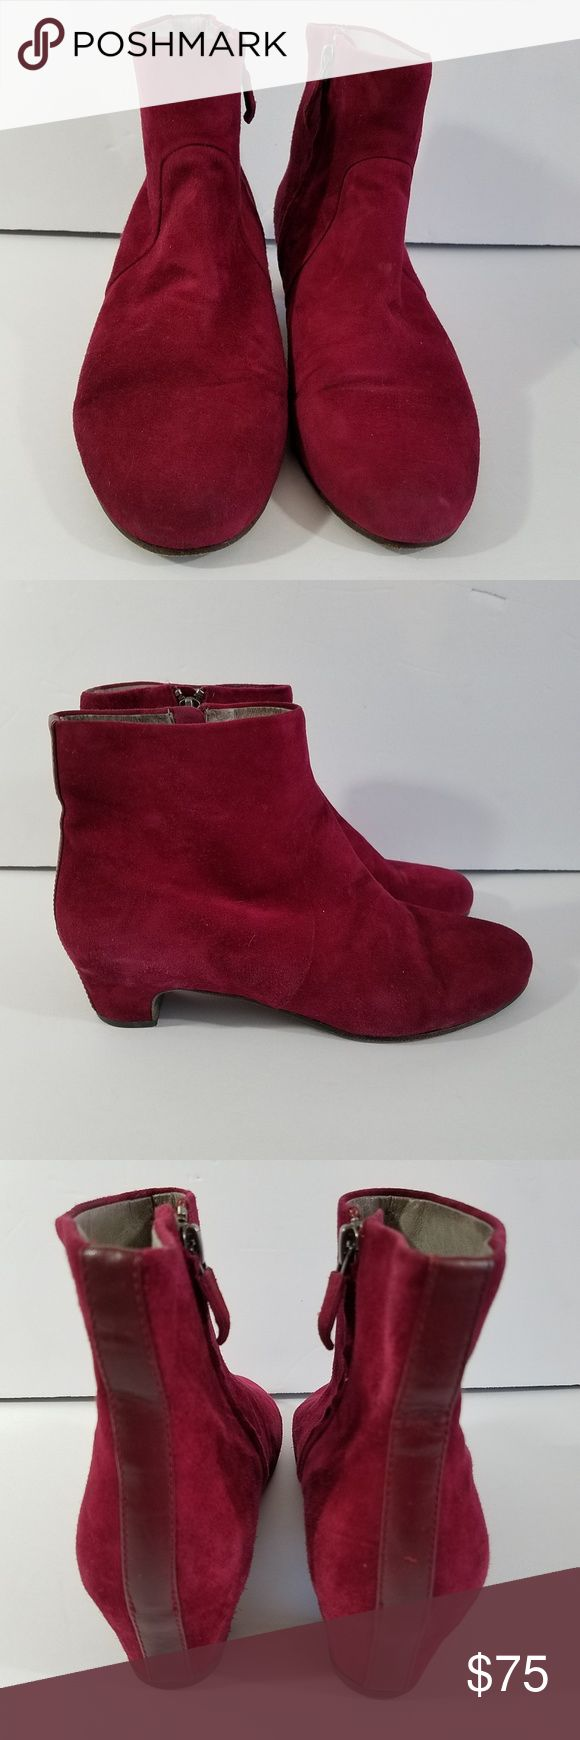 "Eileen Fisher Ankle Boots 6 Suede Eileen Fisher Ankle side Zip boot.  A size 6.  They are a dark Red with a pink tone.  For reference I took a picture next to a Ritz cracker box.  The inside is leather and has a few marks.  Please see the pictures.   They measure 9.25"" toe to heel on the outside bottom.  Small heel of about 1"".  Side zips in good condition.  Please see the pictures for the condition of the shoe.  Mostly suede with a leather strip up the back. Eileen Fisher Shoes Ankle Boots…"